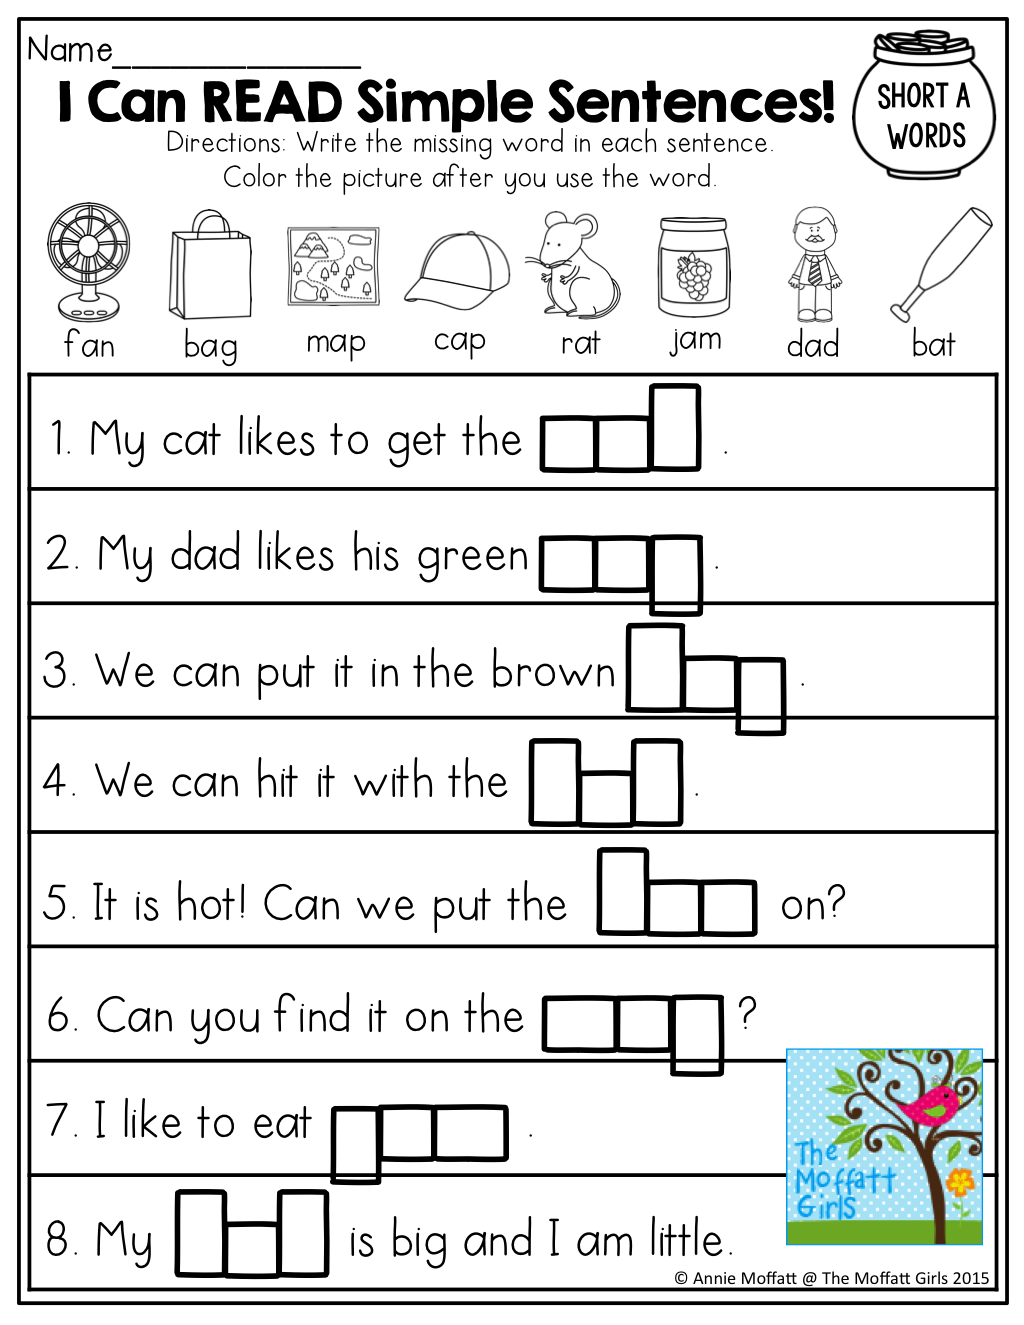 I Can Read! Simple Sentences With Cvc Words To Fill In!